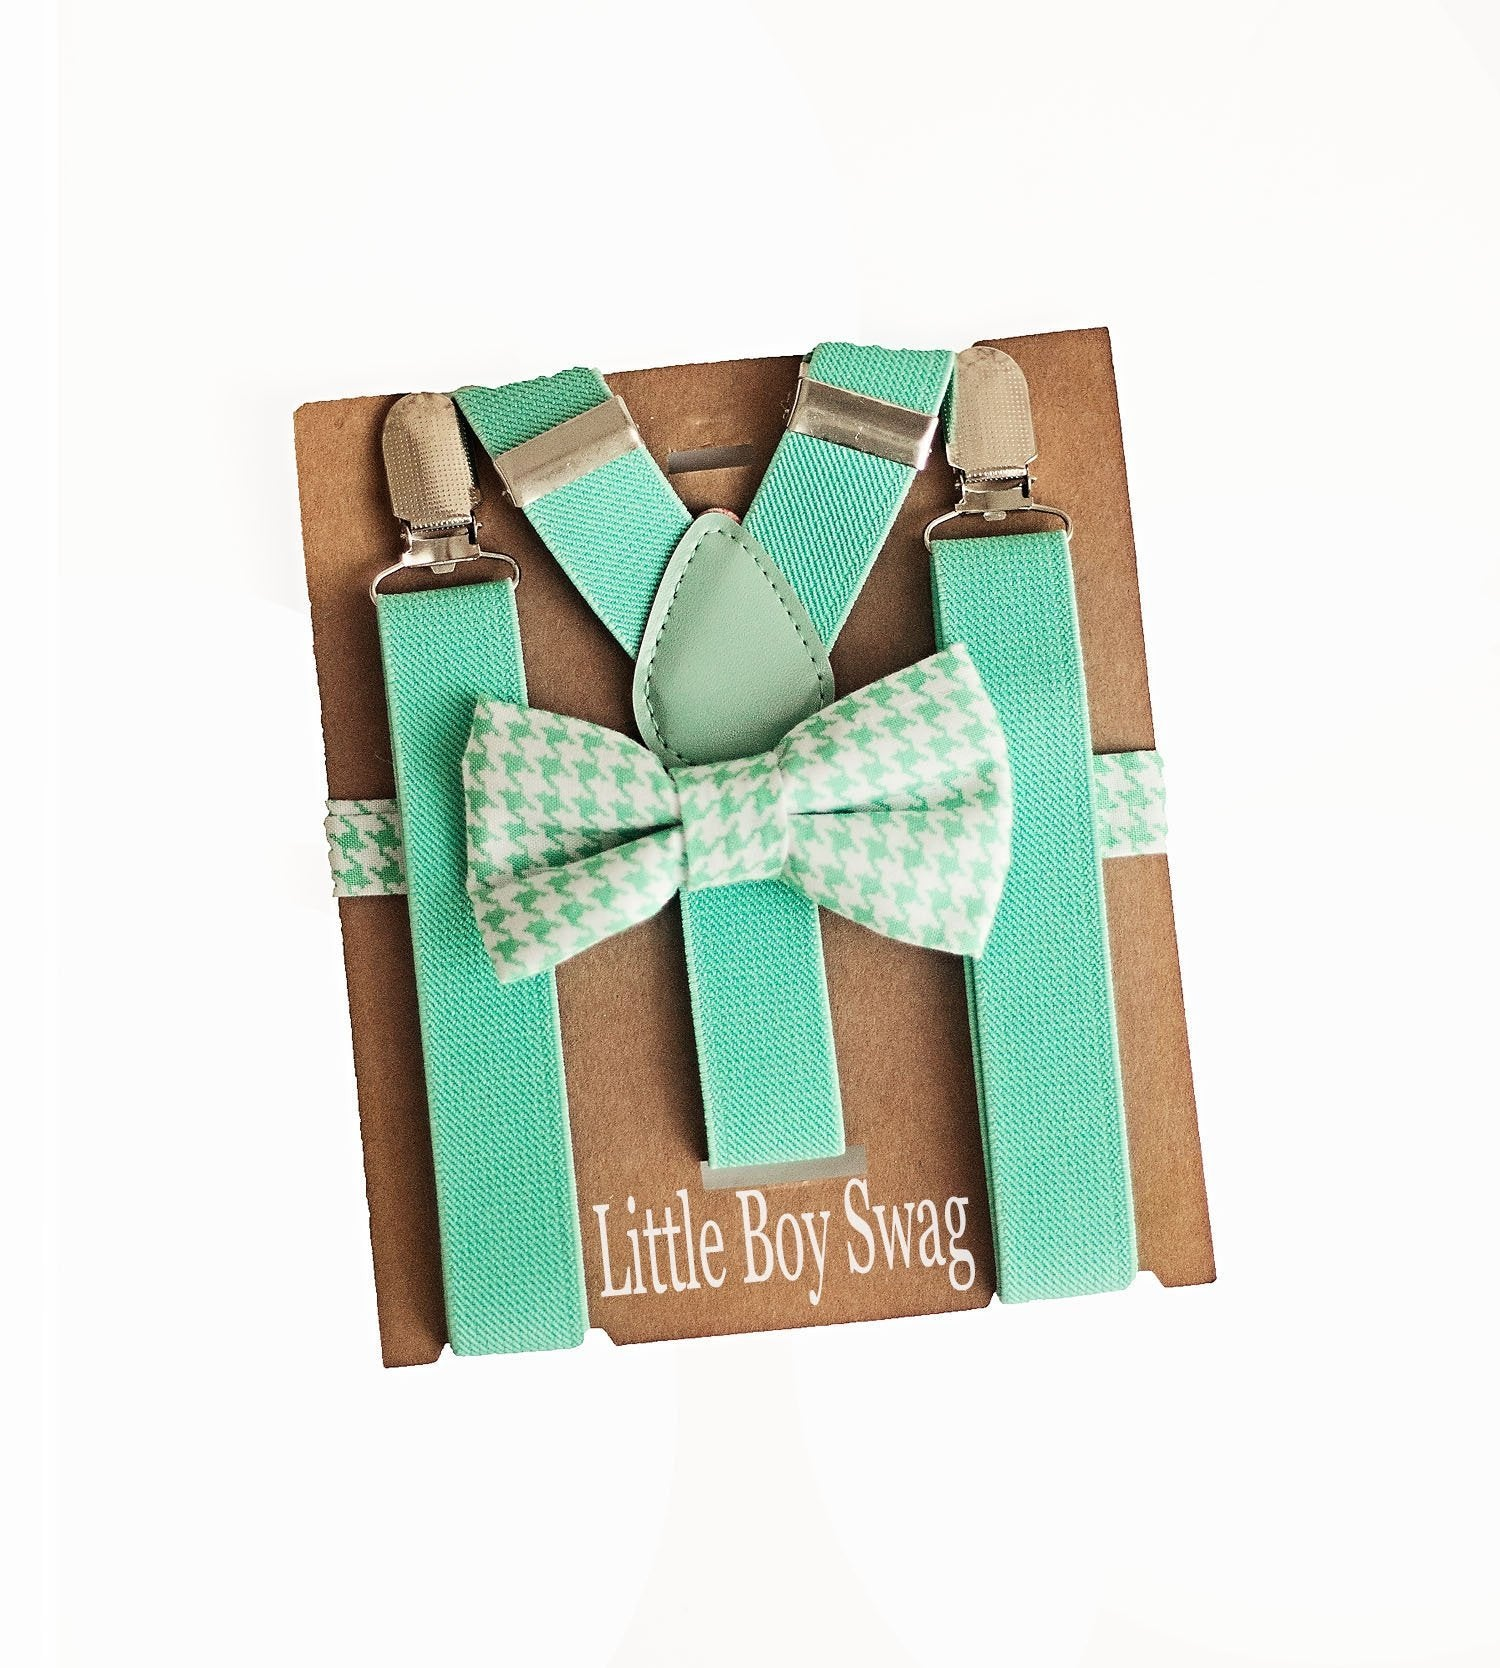 Turquoise/Mint Bow Tie & Suspenders for Cake Smash Outfit, Boy 1st  Birthday, Baby Shower Gift for Boys,Beach Wedding Outfit Kids,Ring Bearer